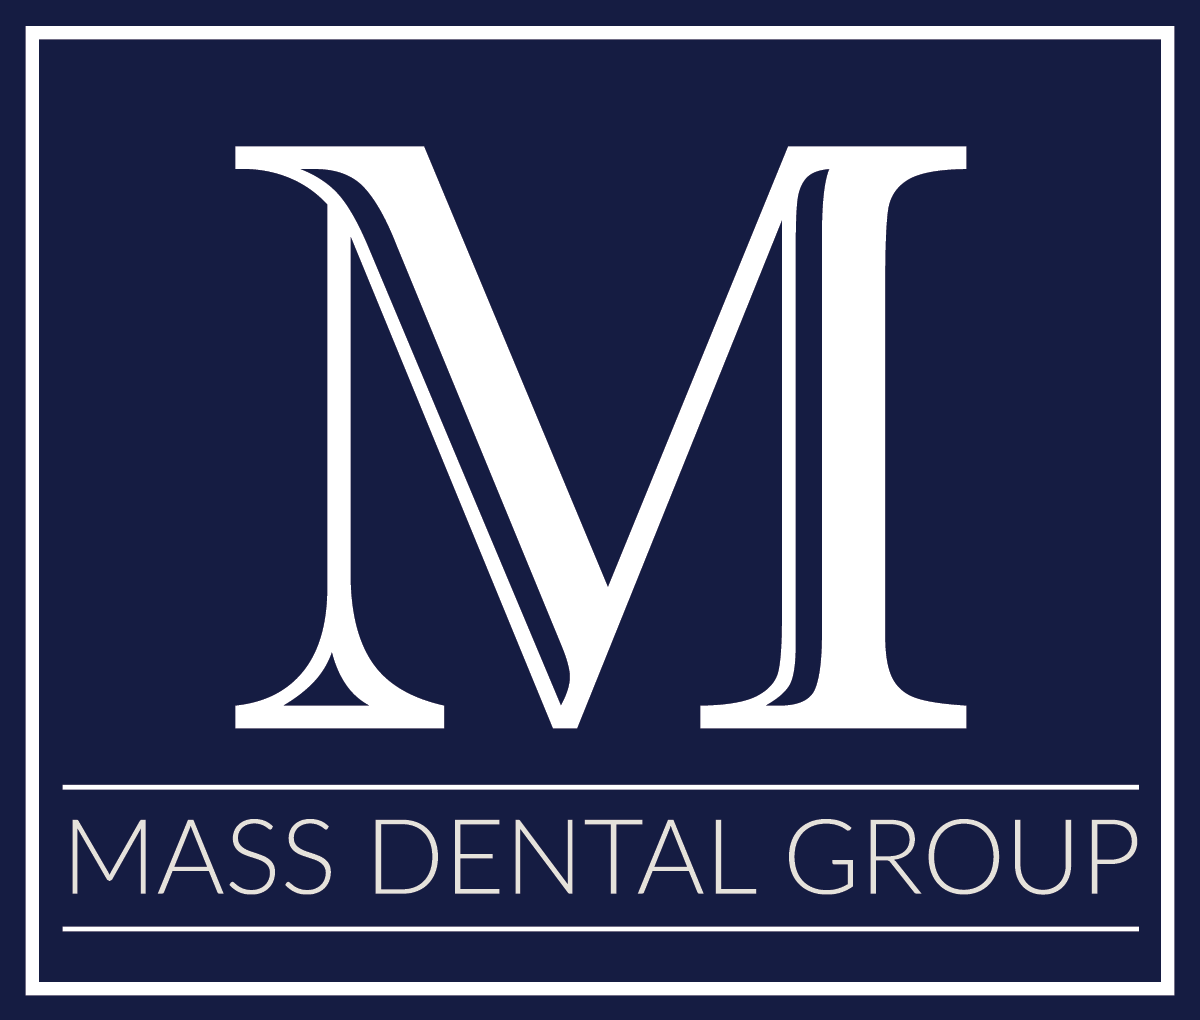 Mass Dental Group Website